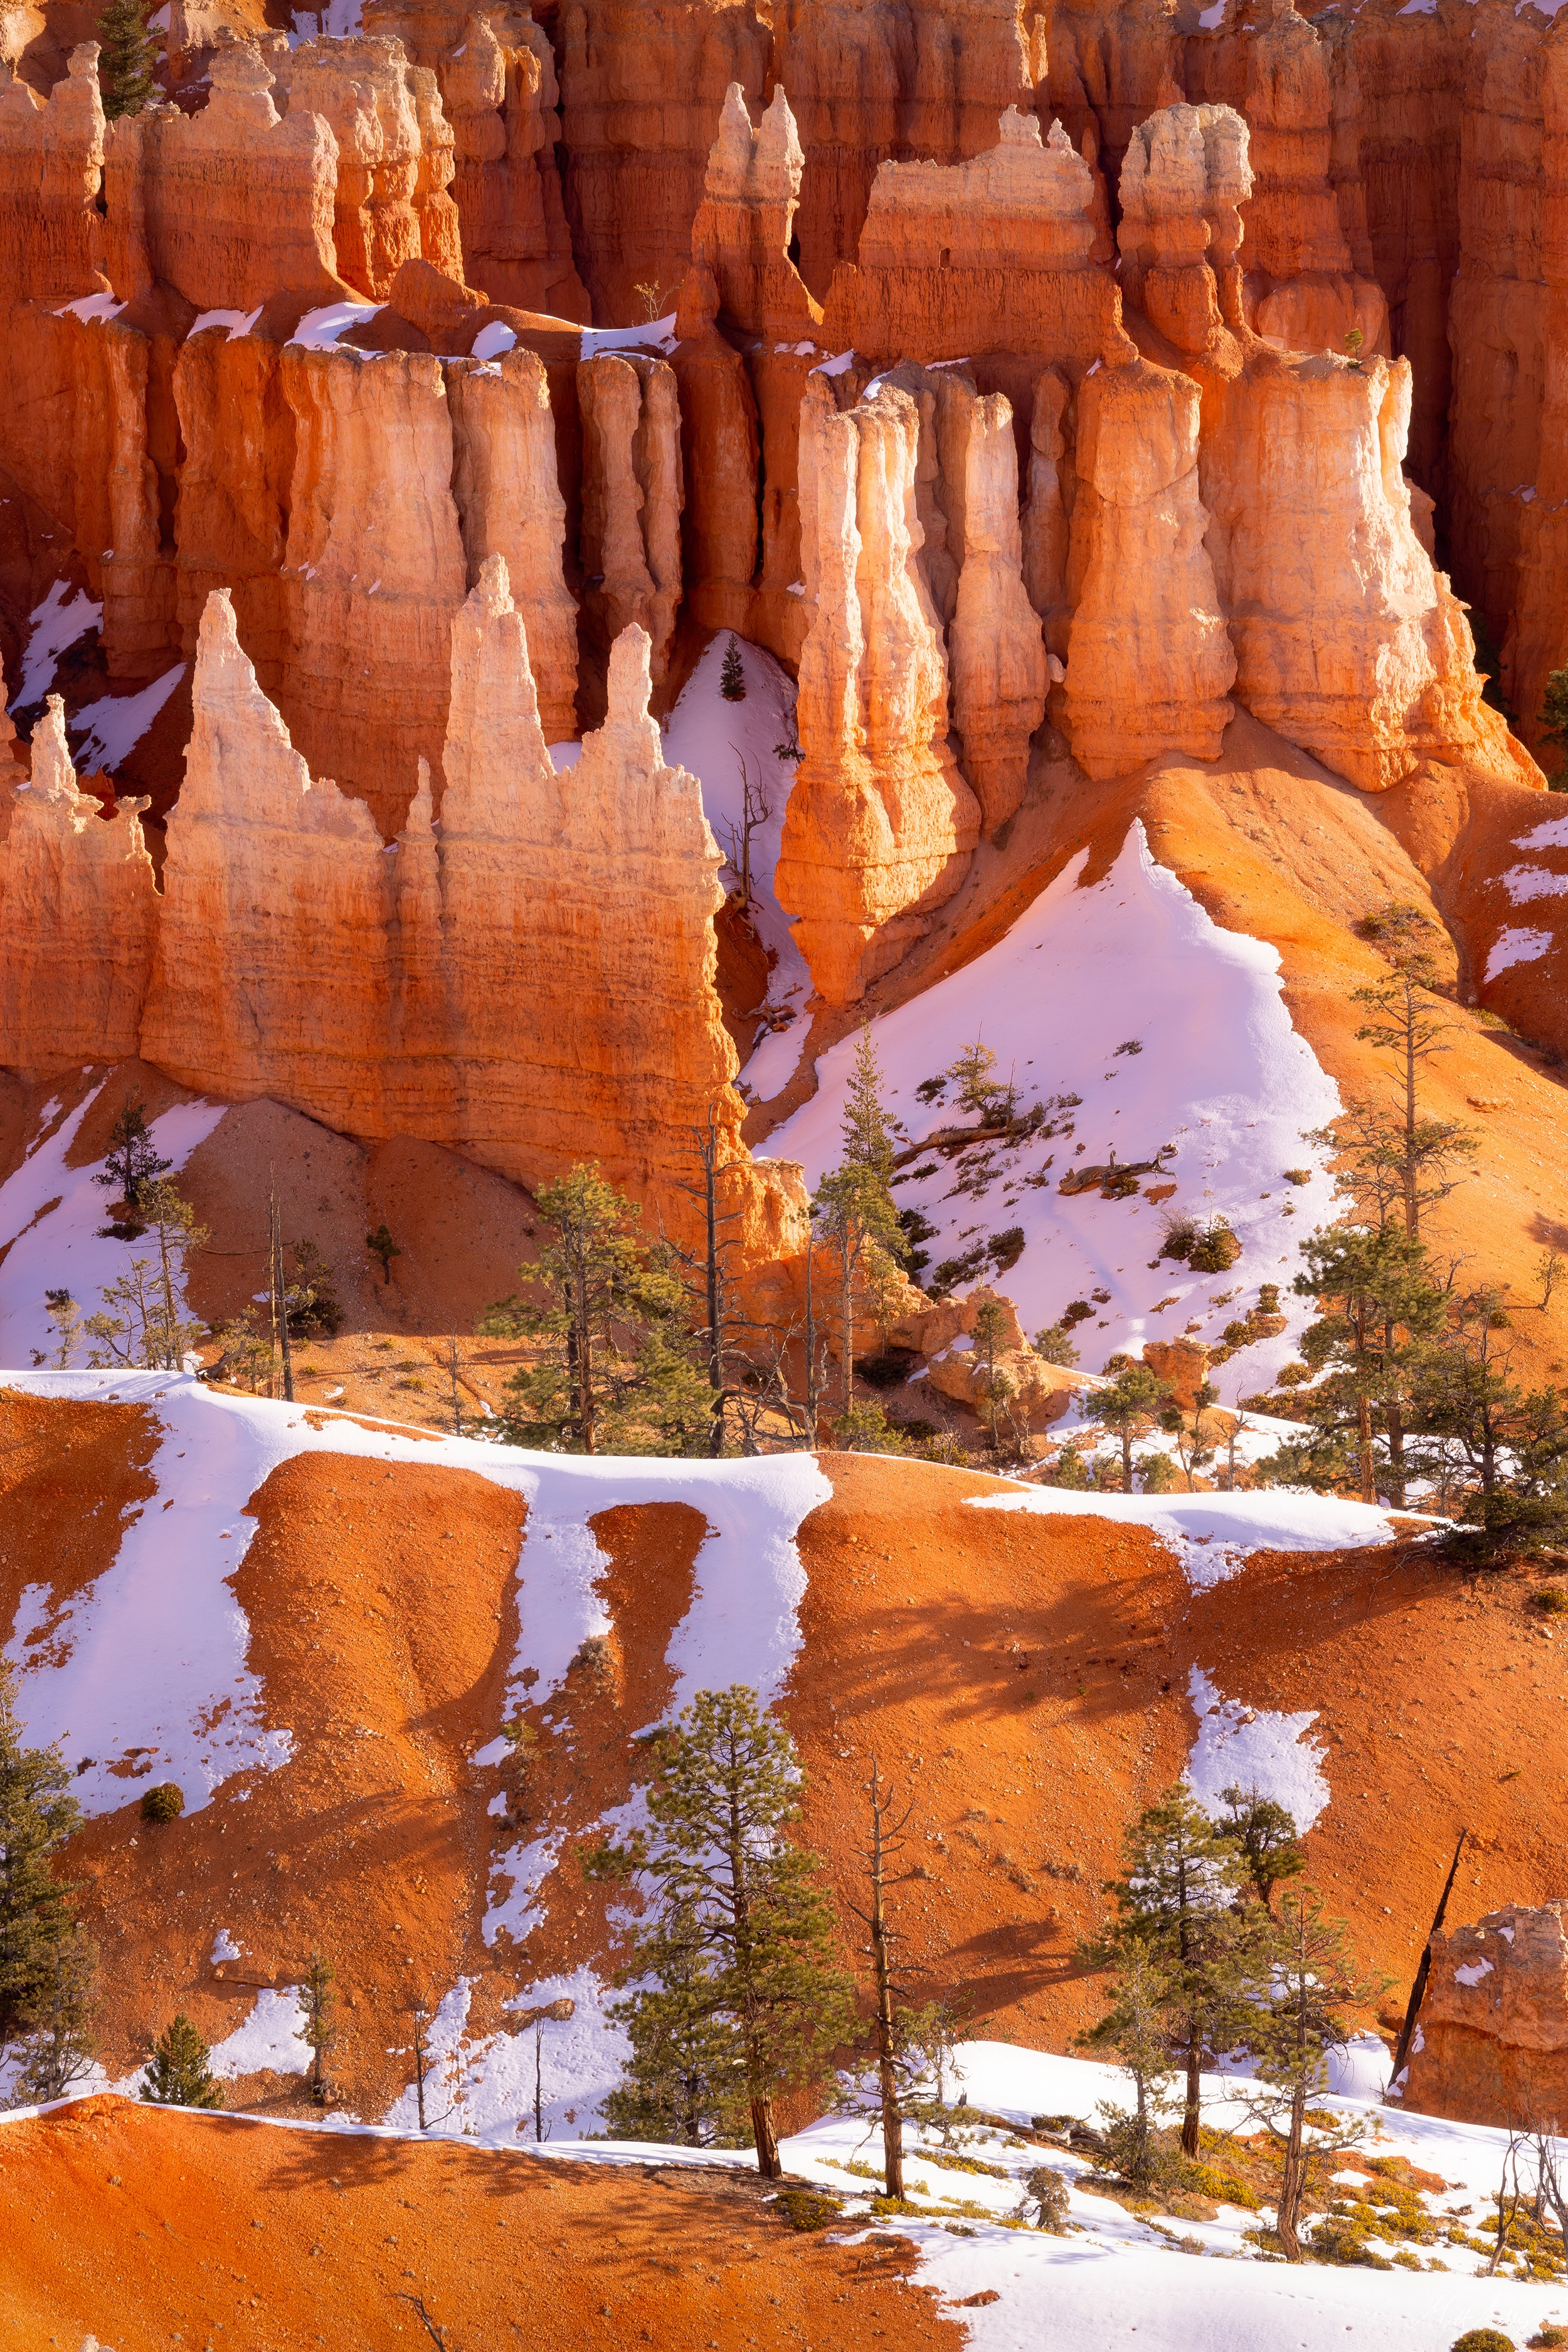 Desert landscape with hoodoos in the background and melting snow in the foreground.